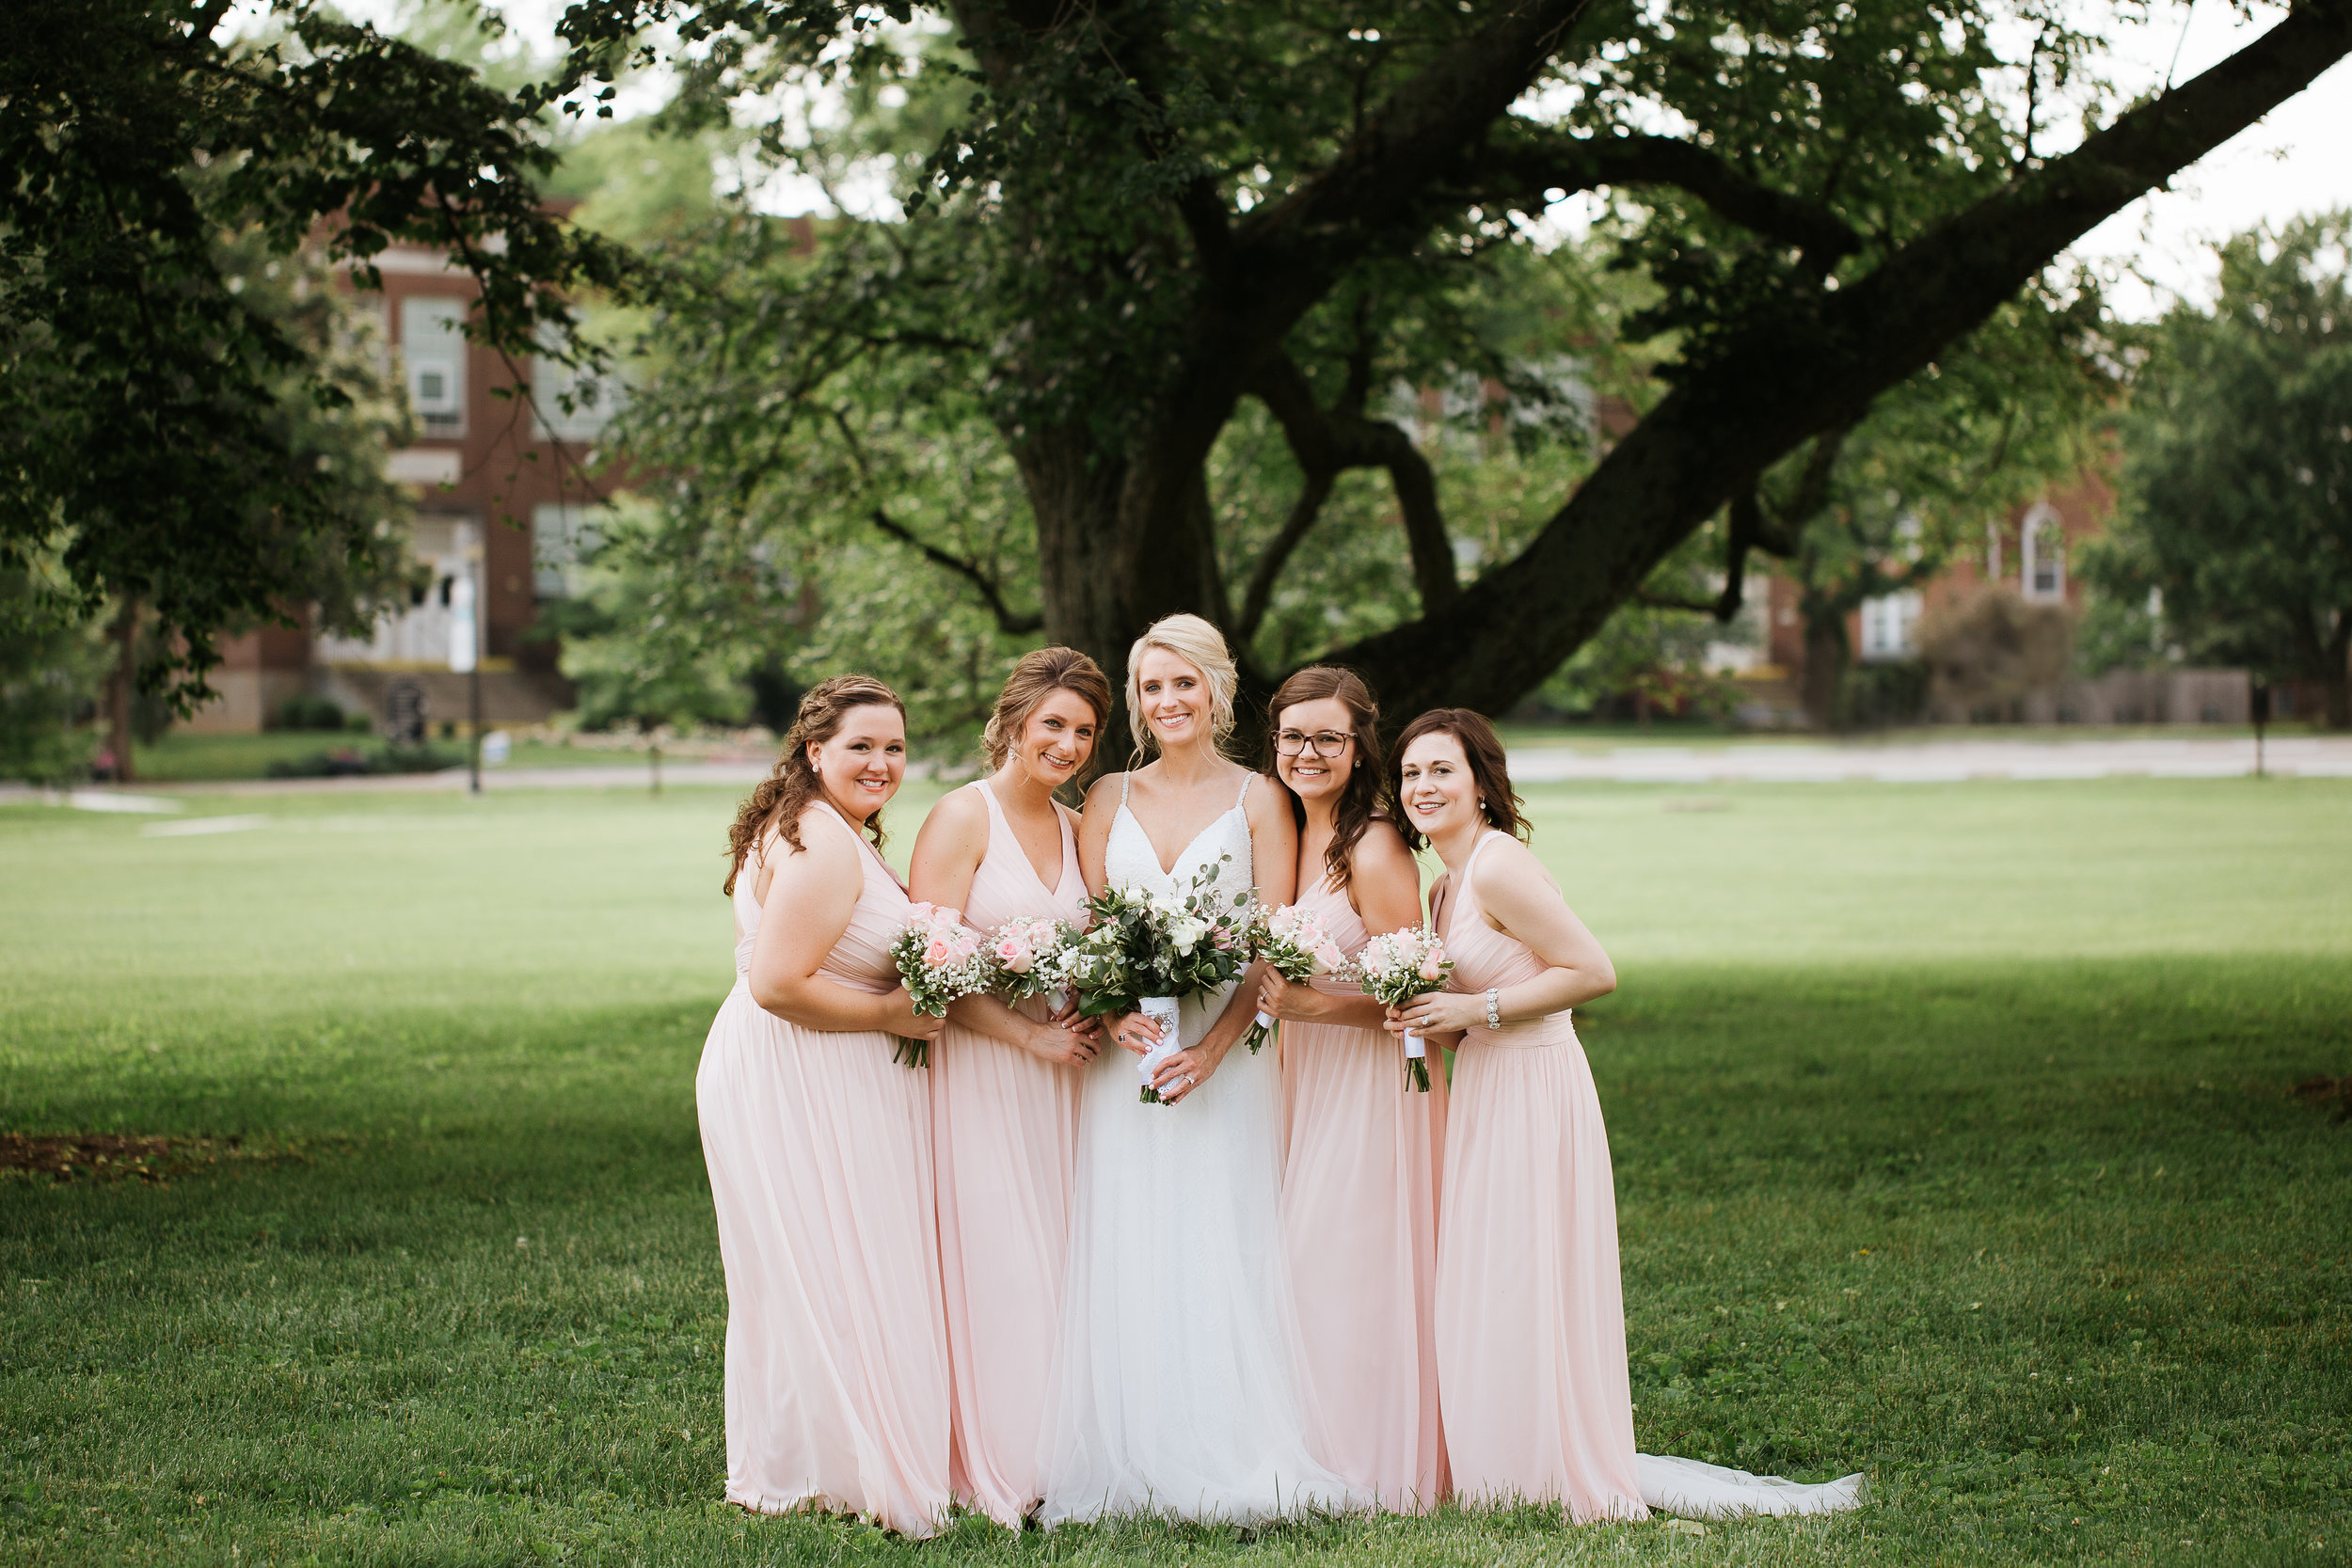 Sydney + Hunter - Bridal Party-41.jpg